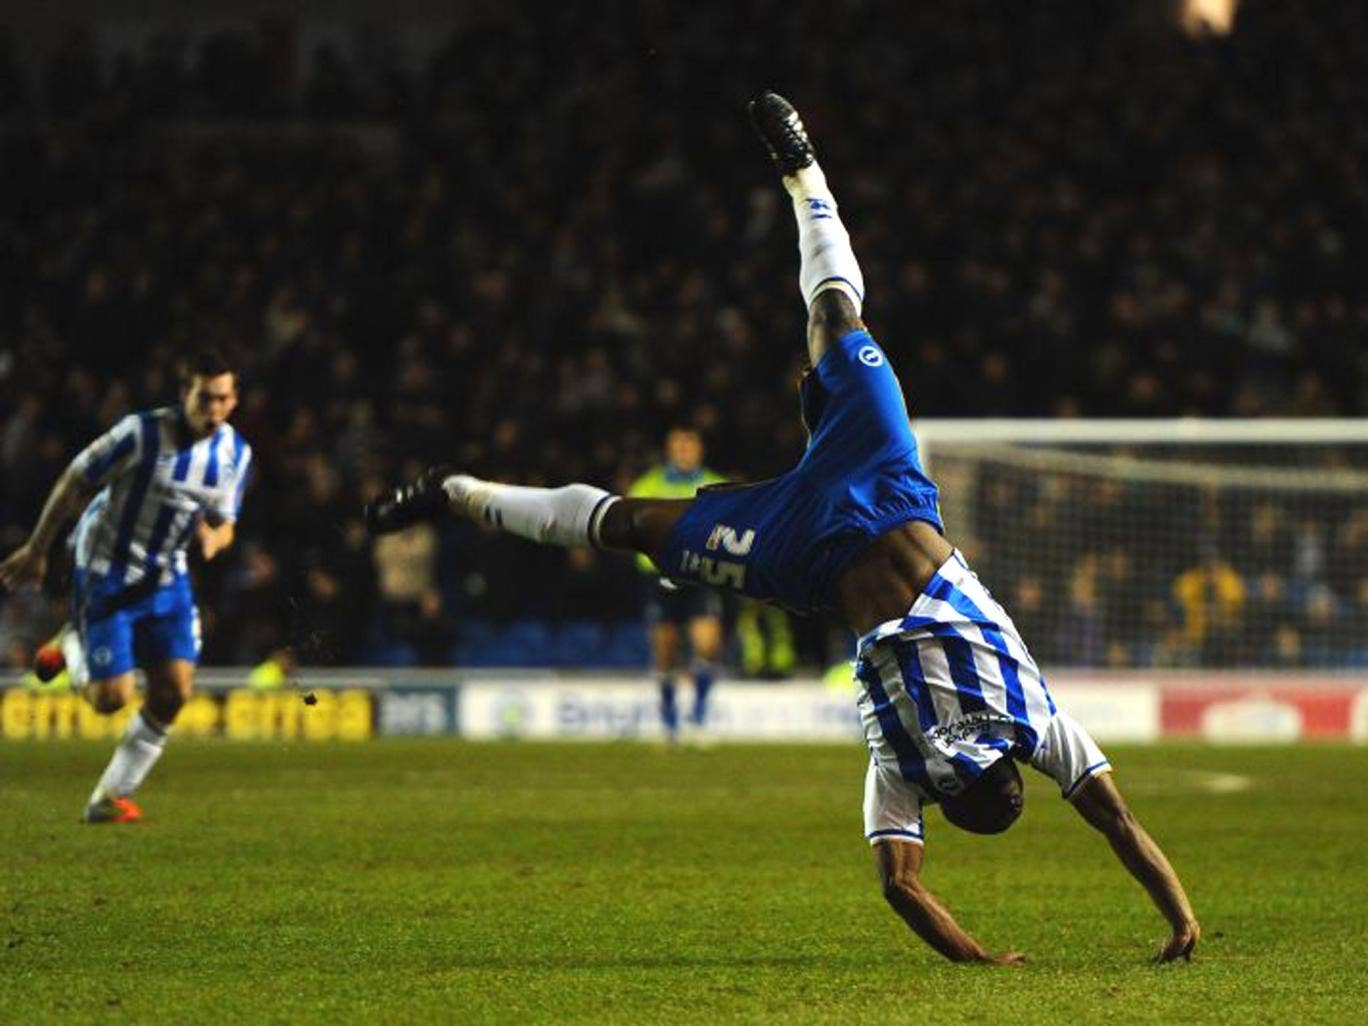 Kazenga LuaLua's goal celebrations have been banned by the club doctor